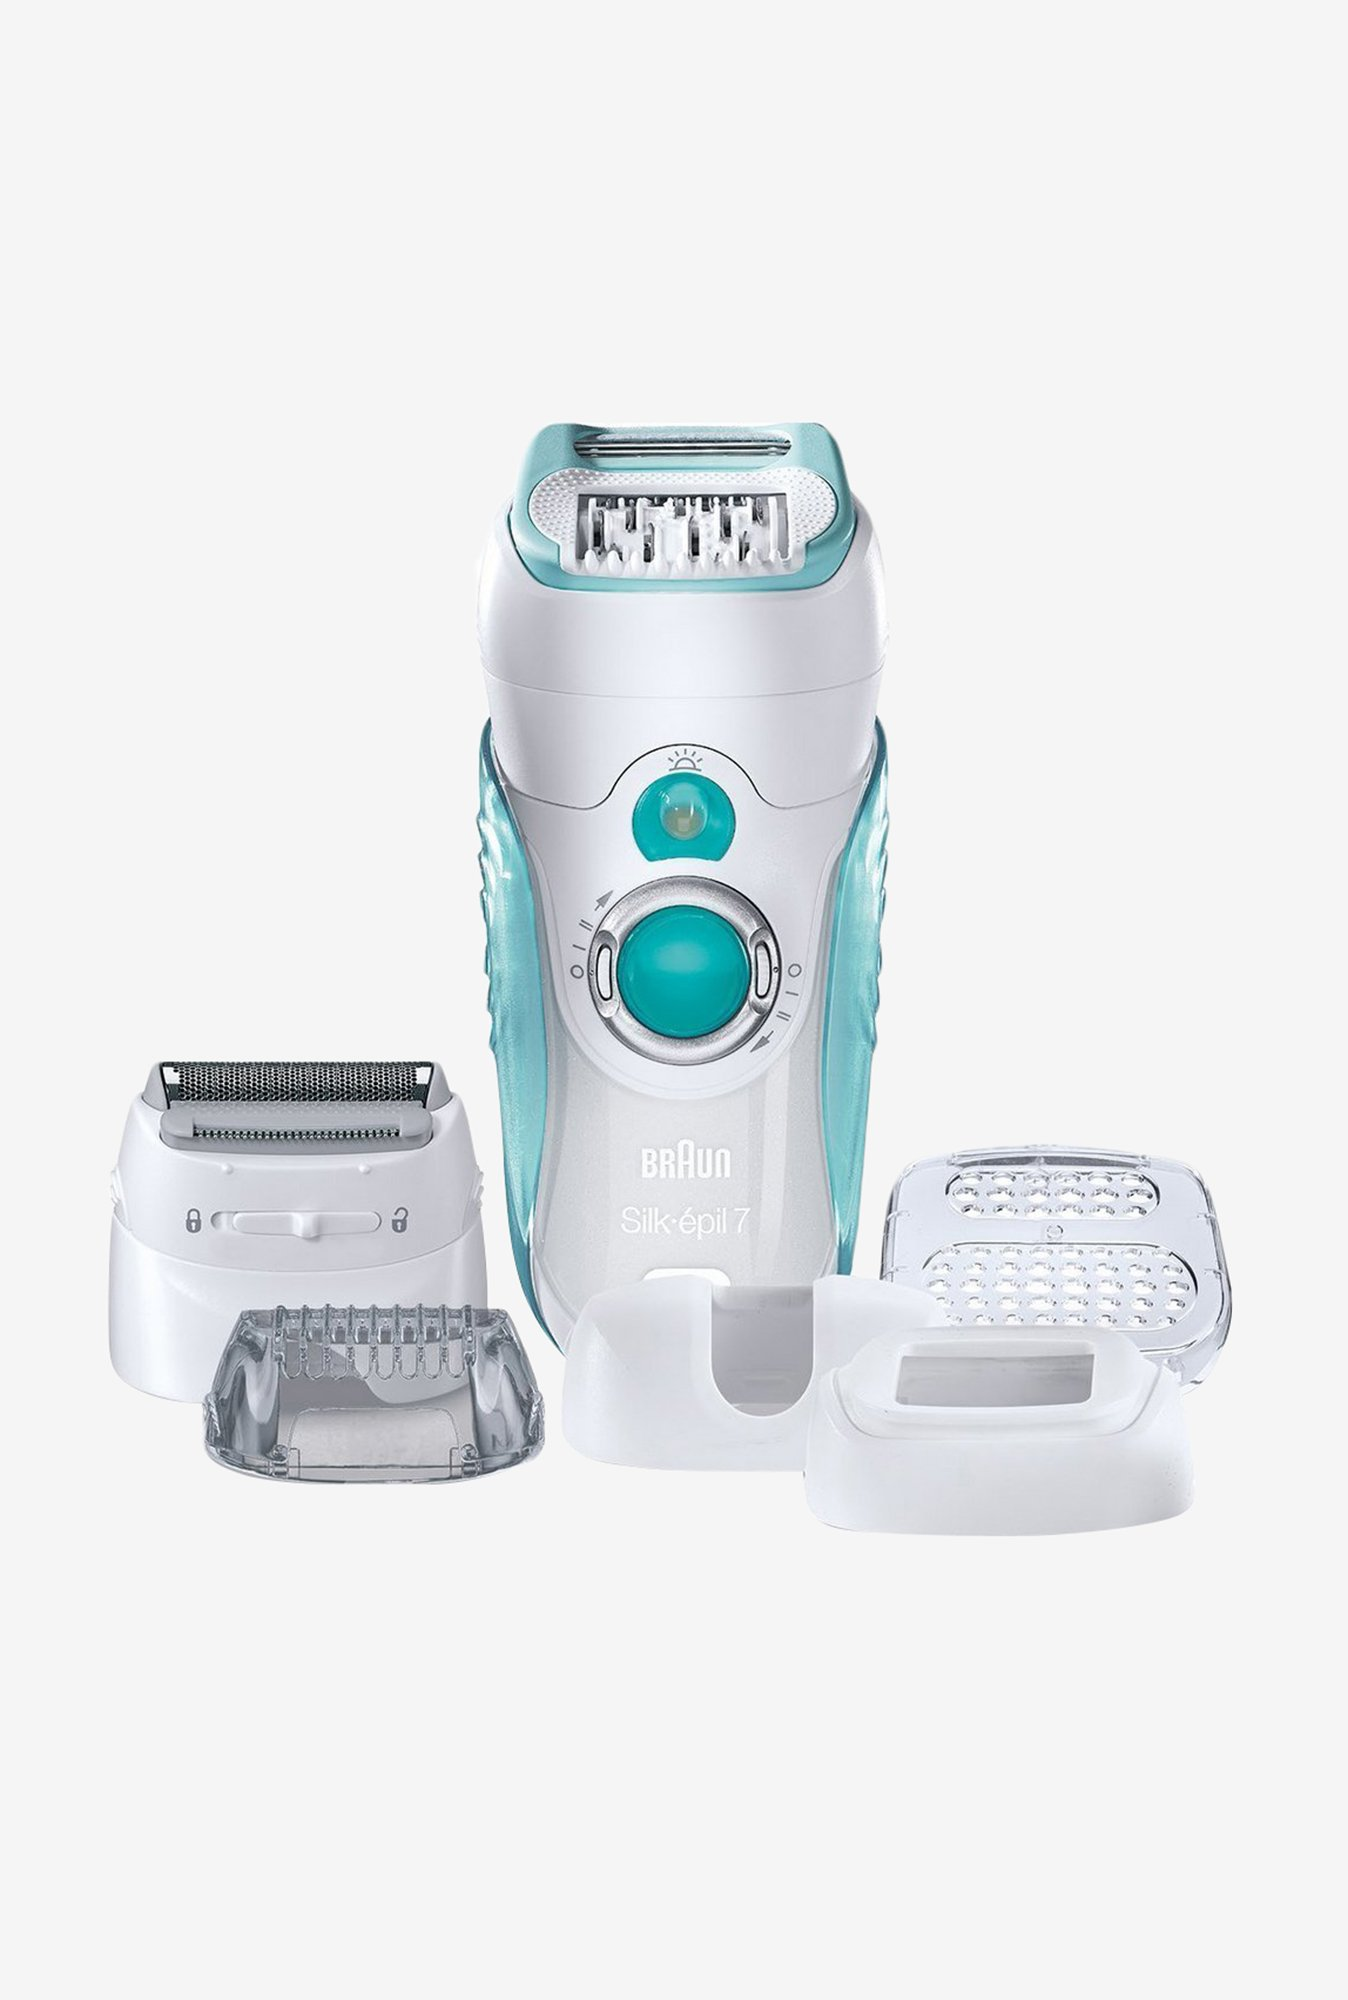 Braun Silk-Epil 7-751 Epilator White